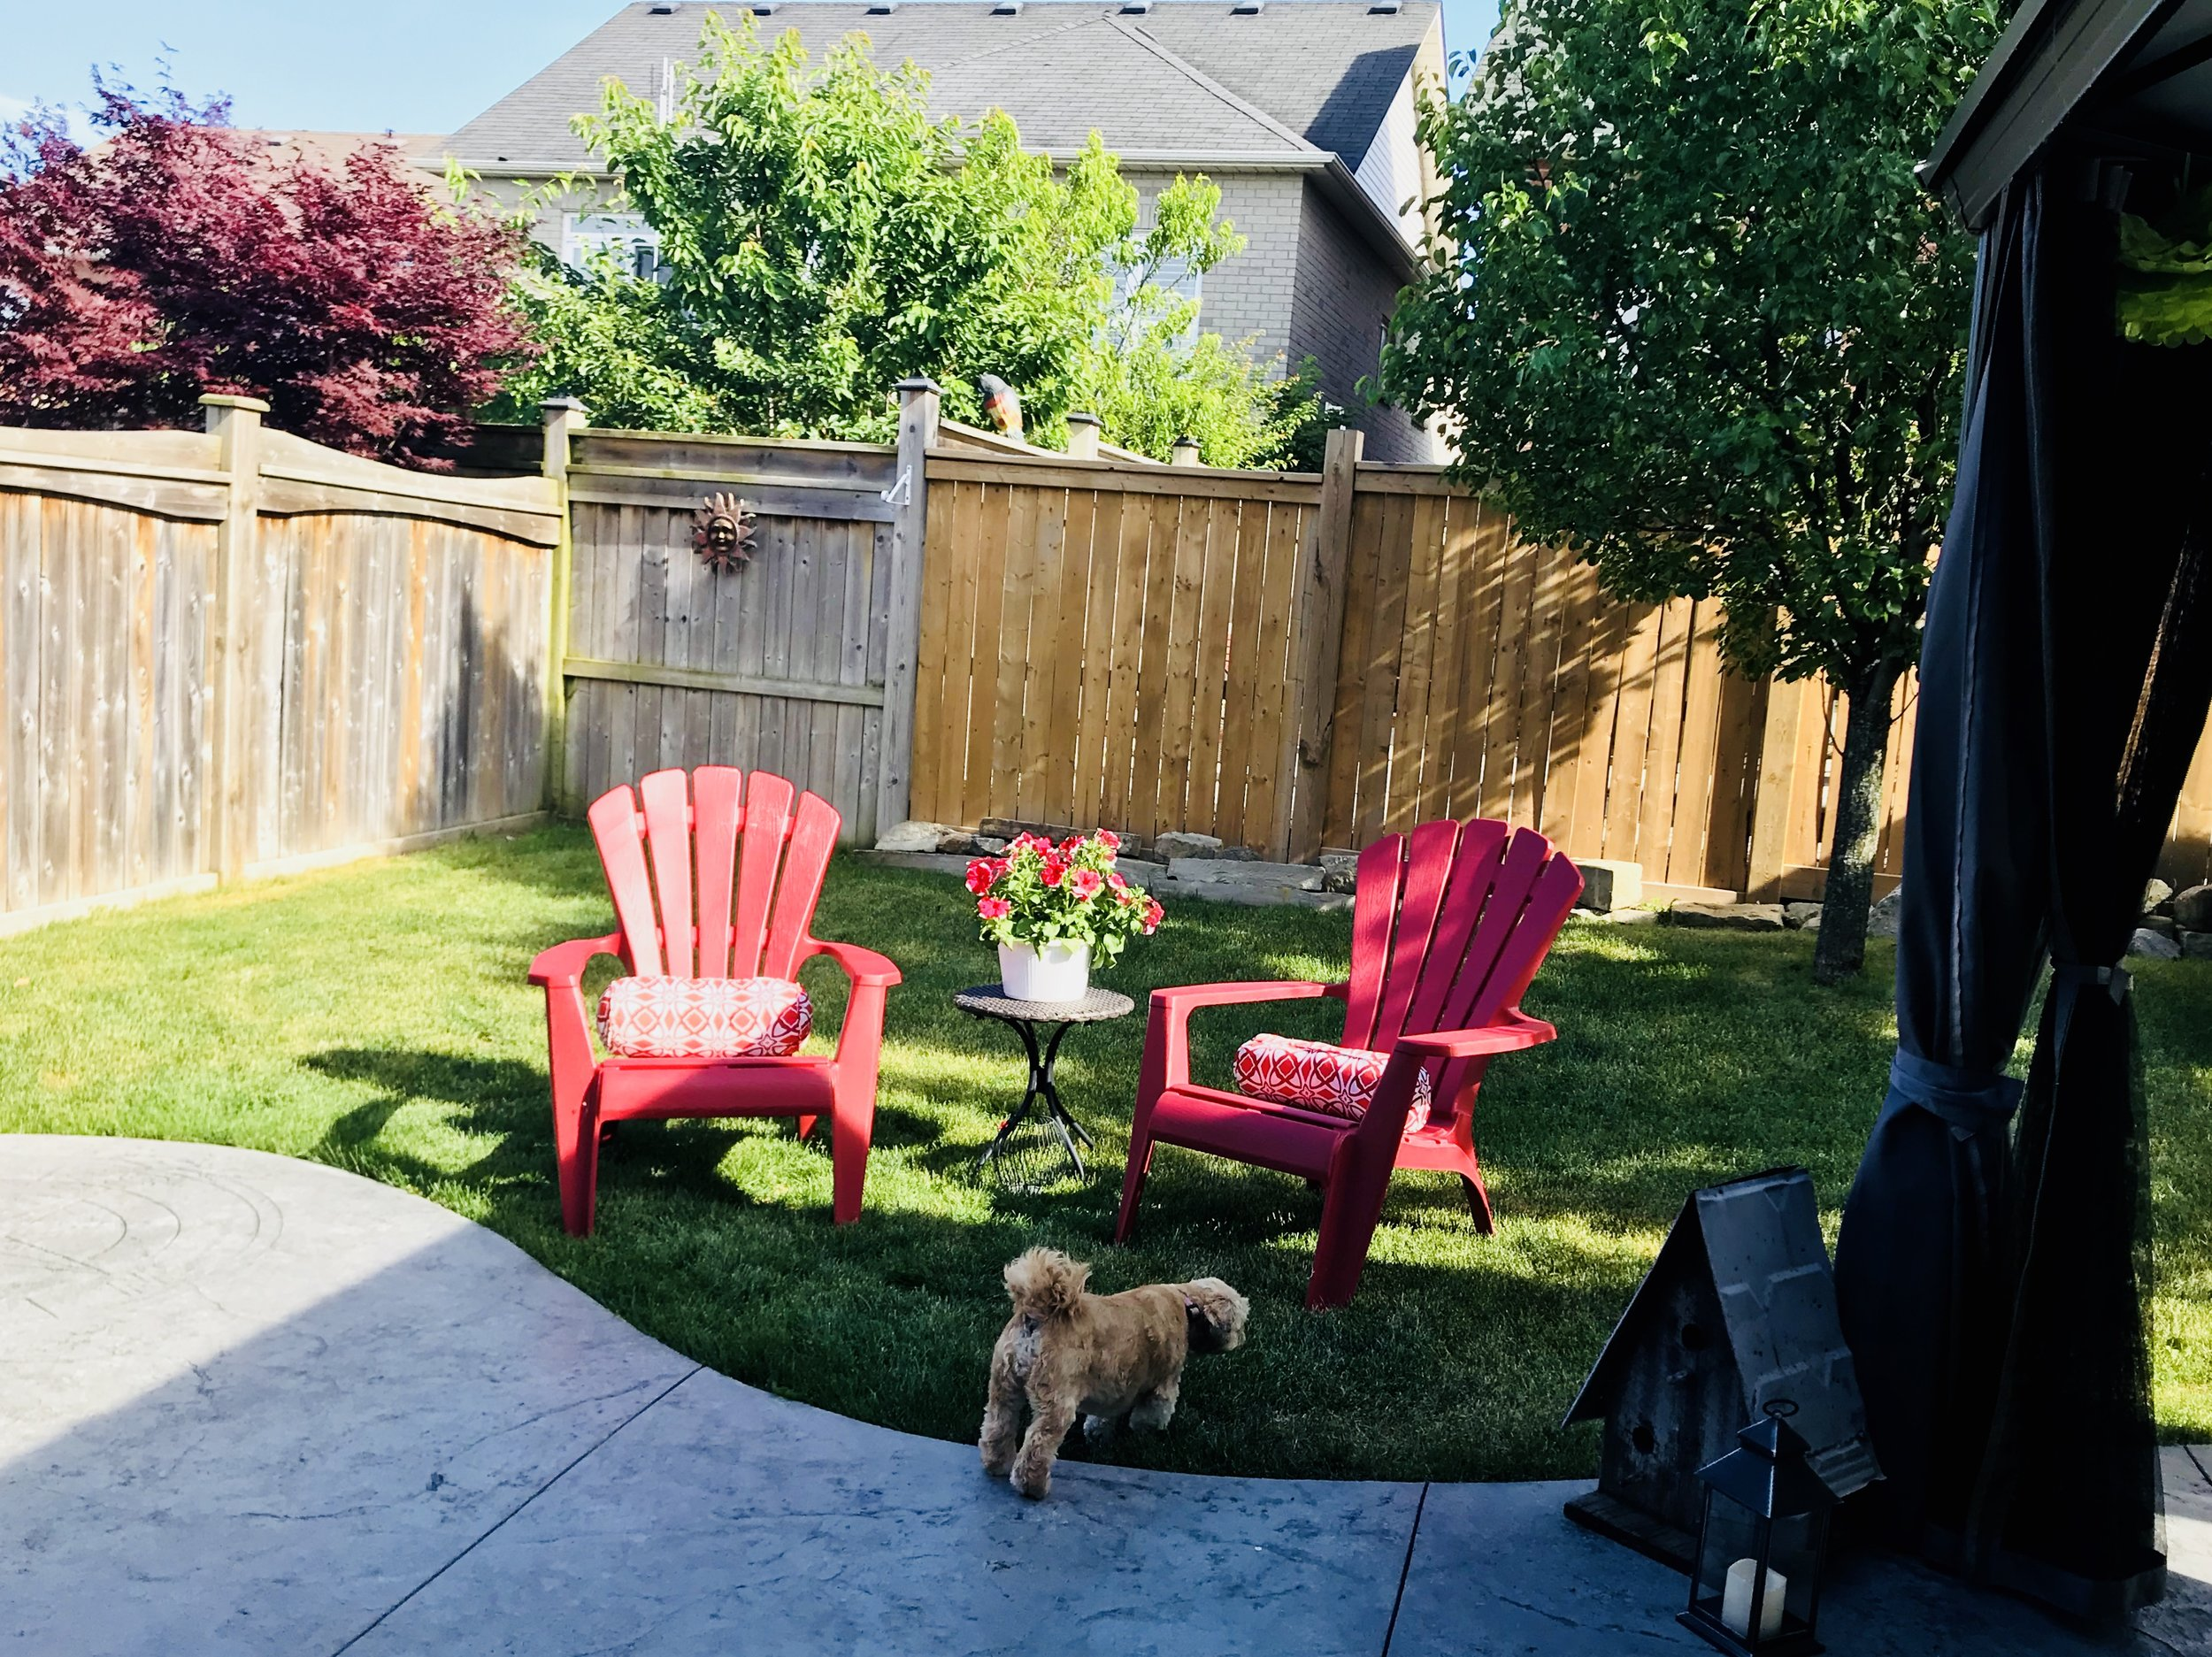 The lines you see in the patio are how the water drains off the patio onto the lawn.  We always worry these aren't quite right too!  Red muskoka chairs are from  Canadian Tire a nd cushions are  Presidents Choice !